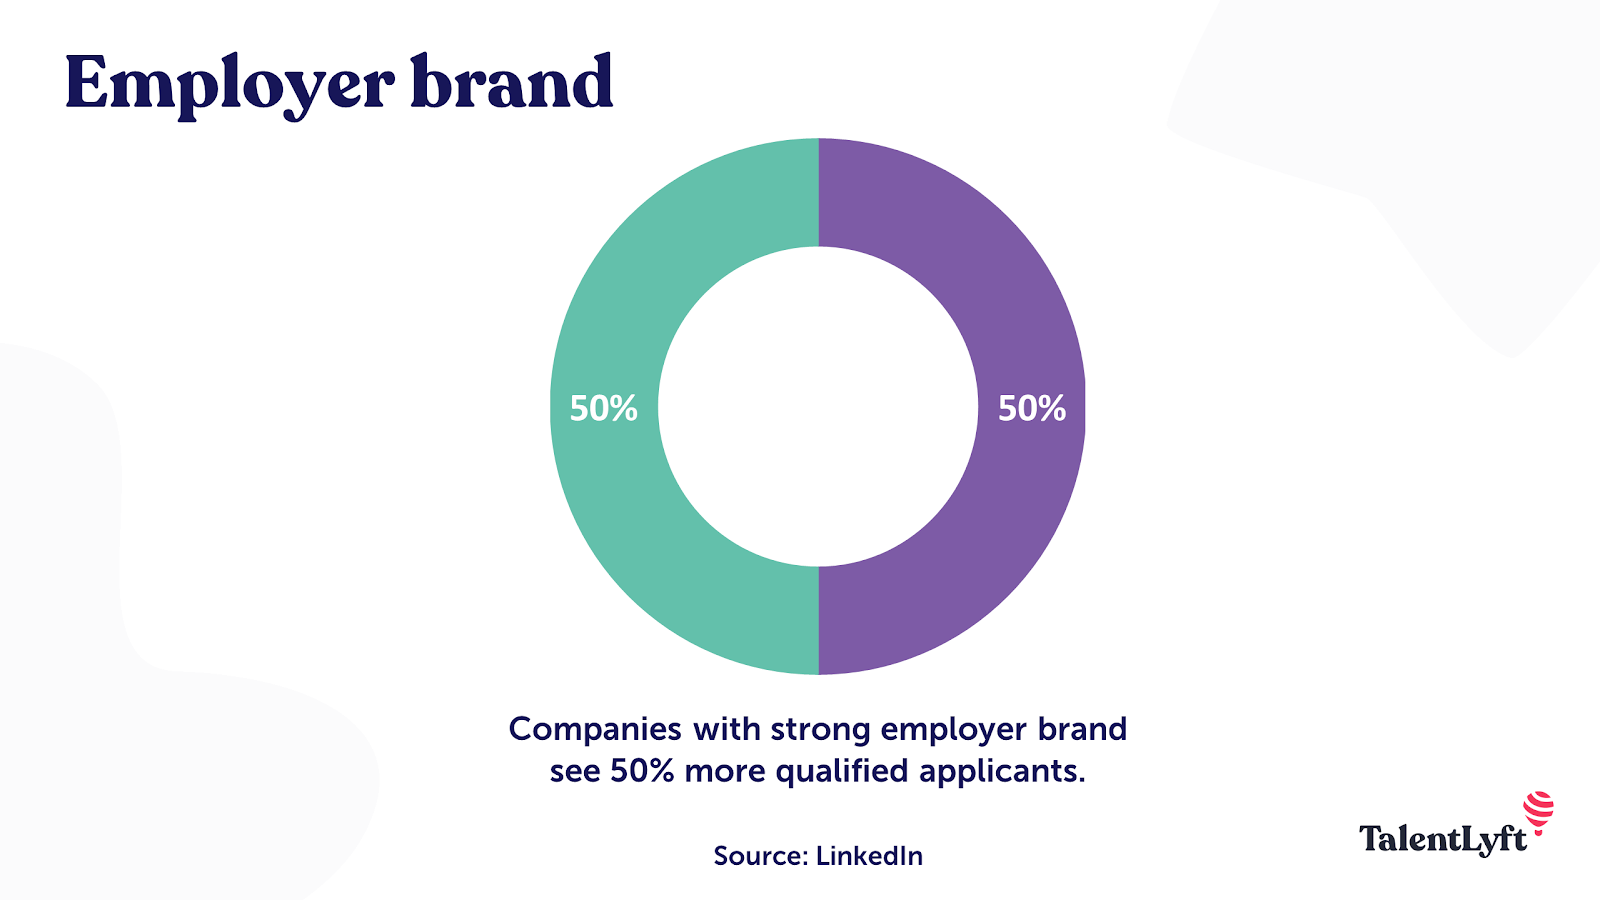 Employer brand importance statistics